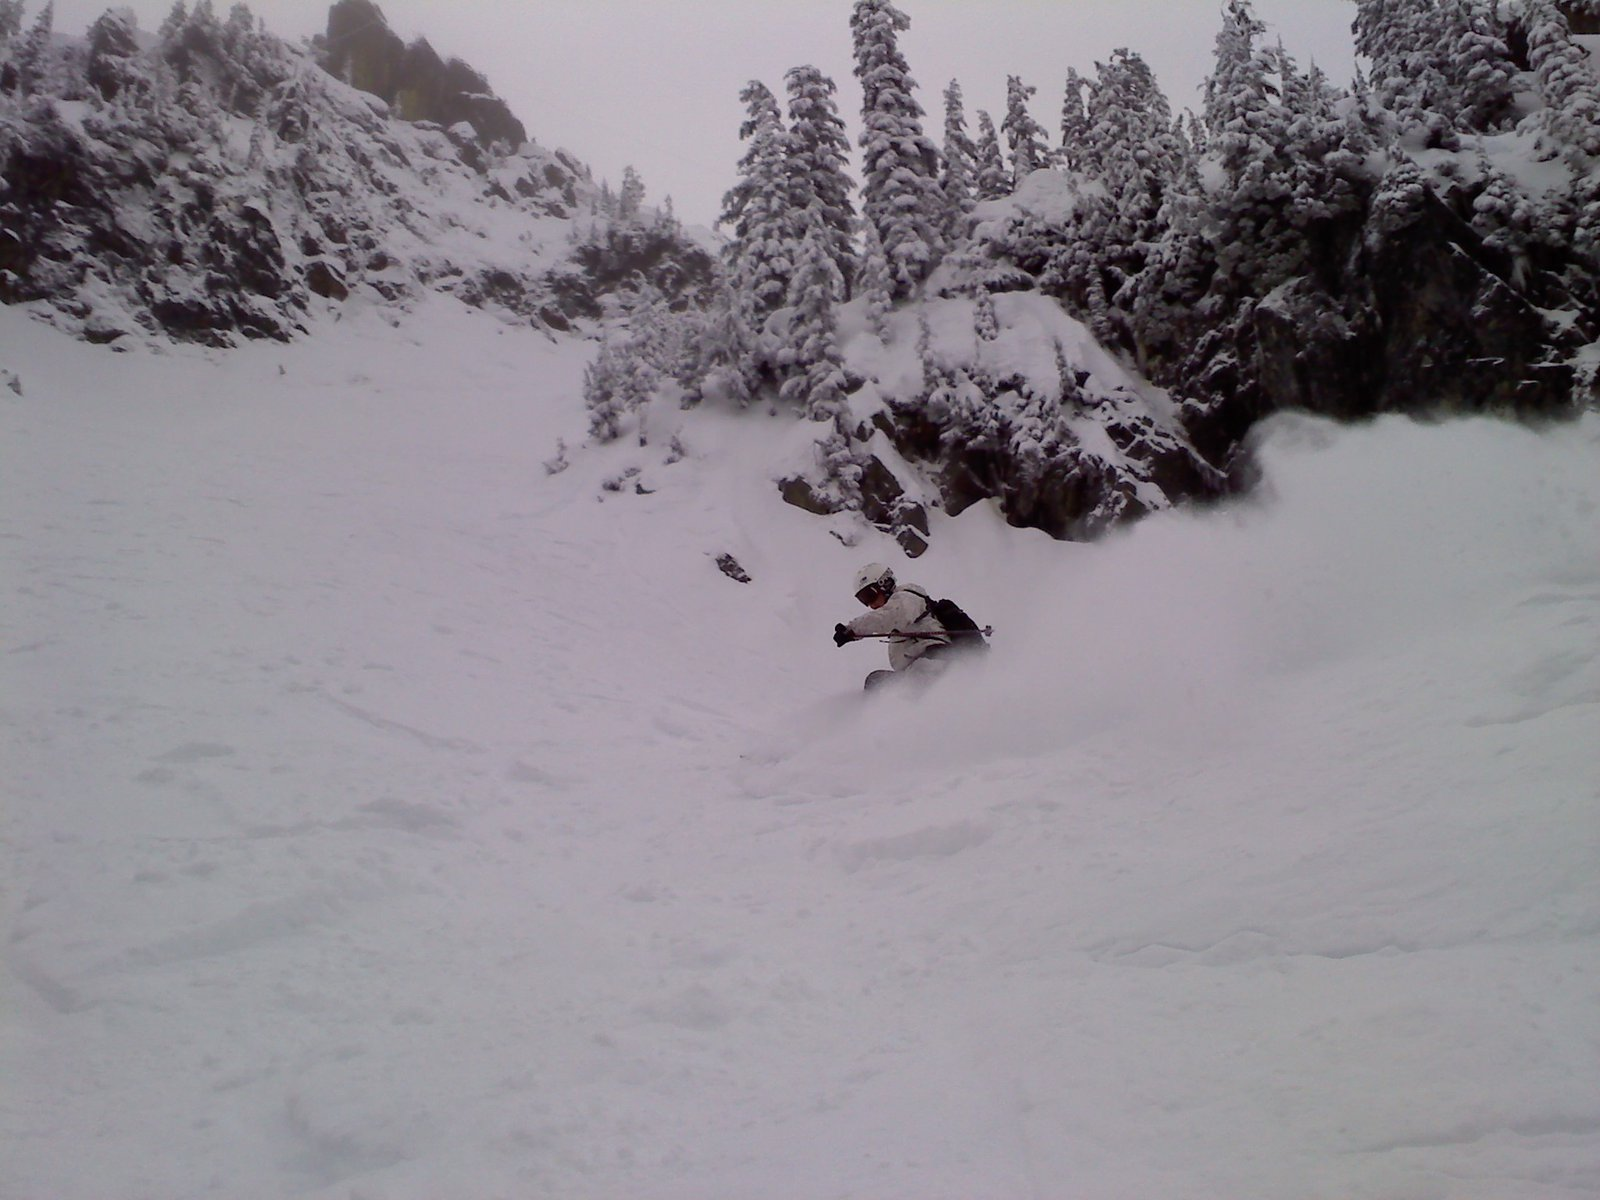 Hitting alpental on the new pow skis